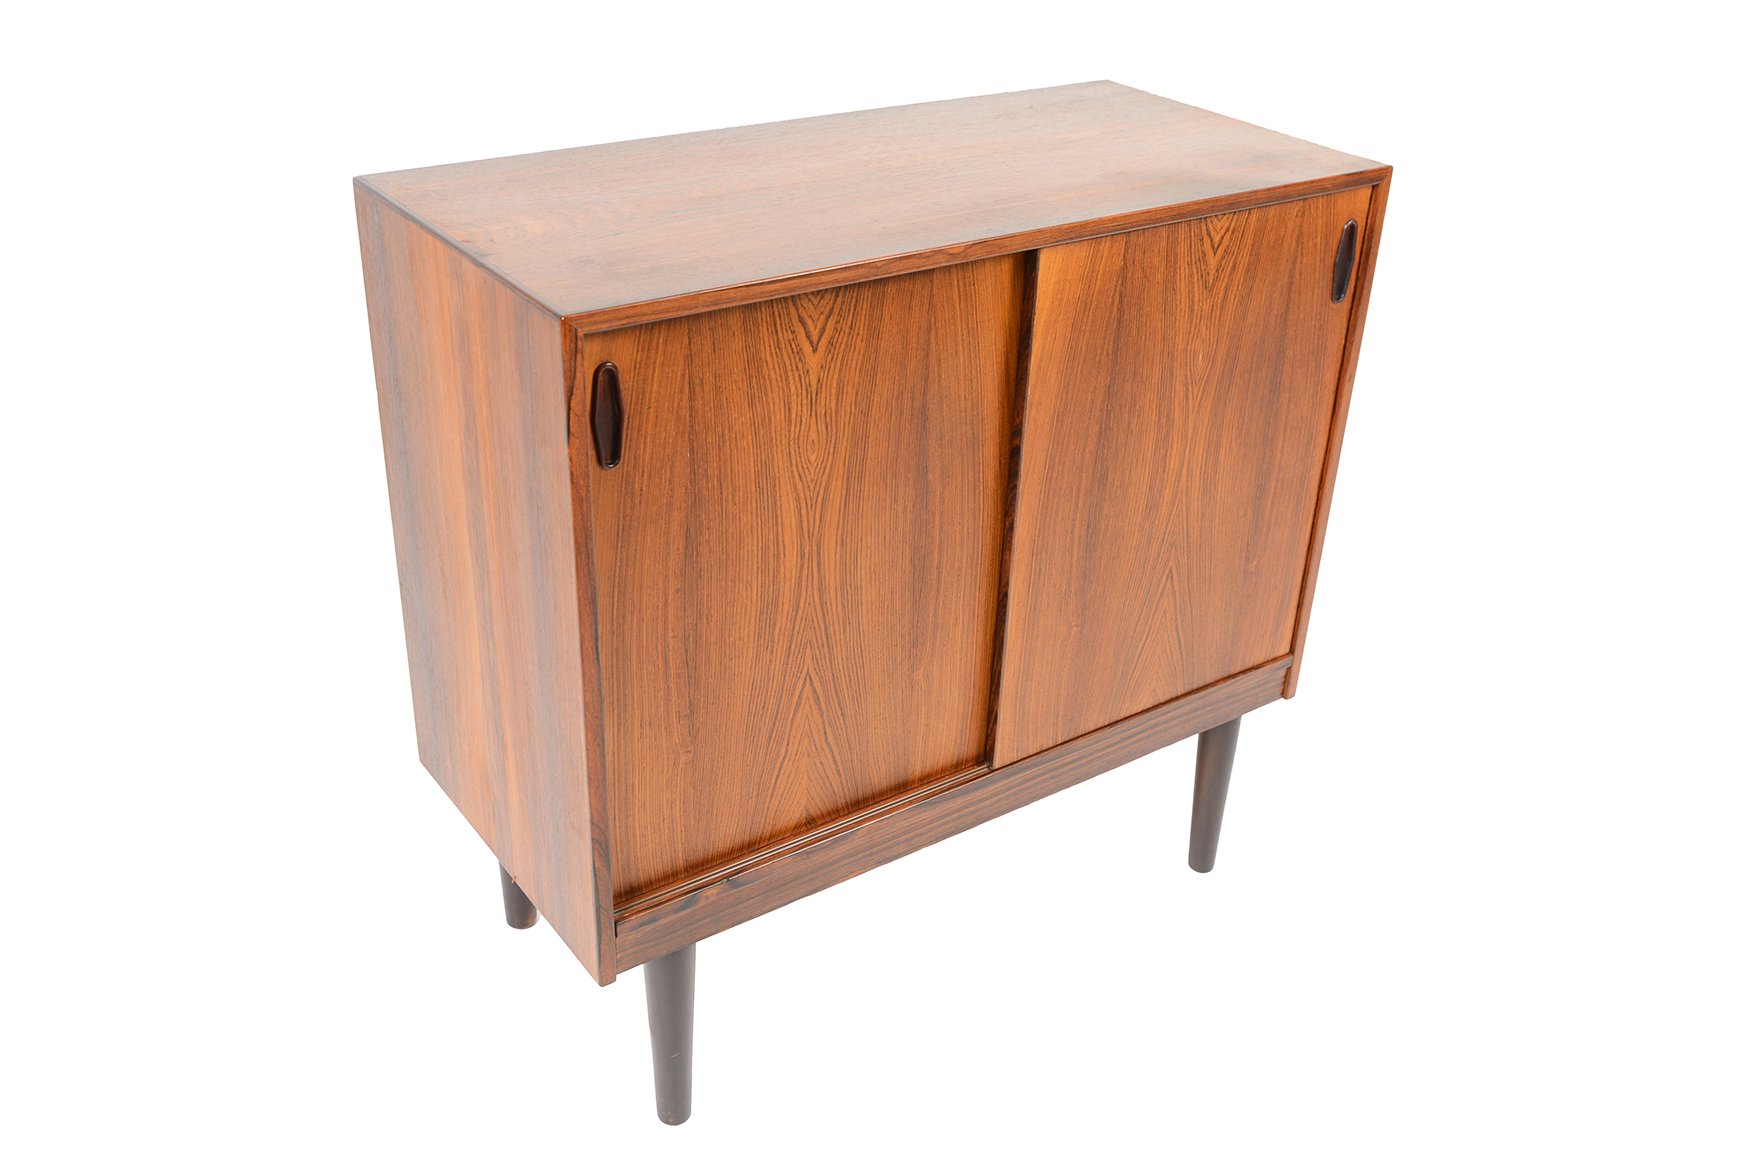 Small Danish Credenza : Credenzas sideboards u chris howard antiques modern